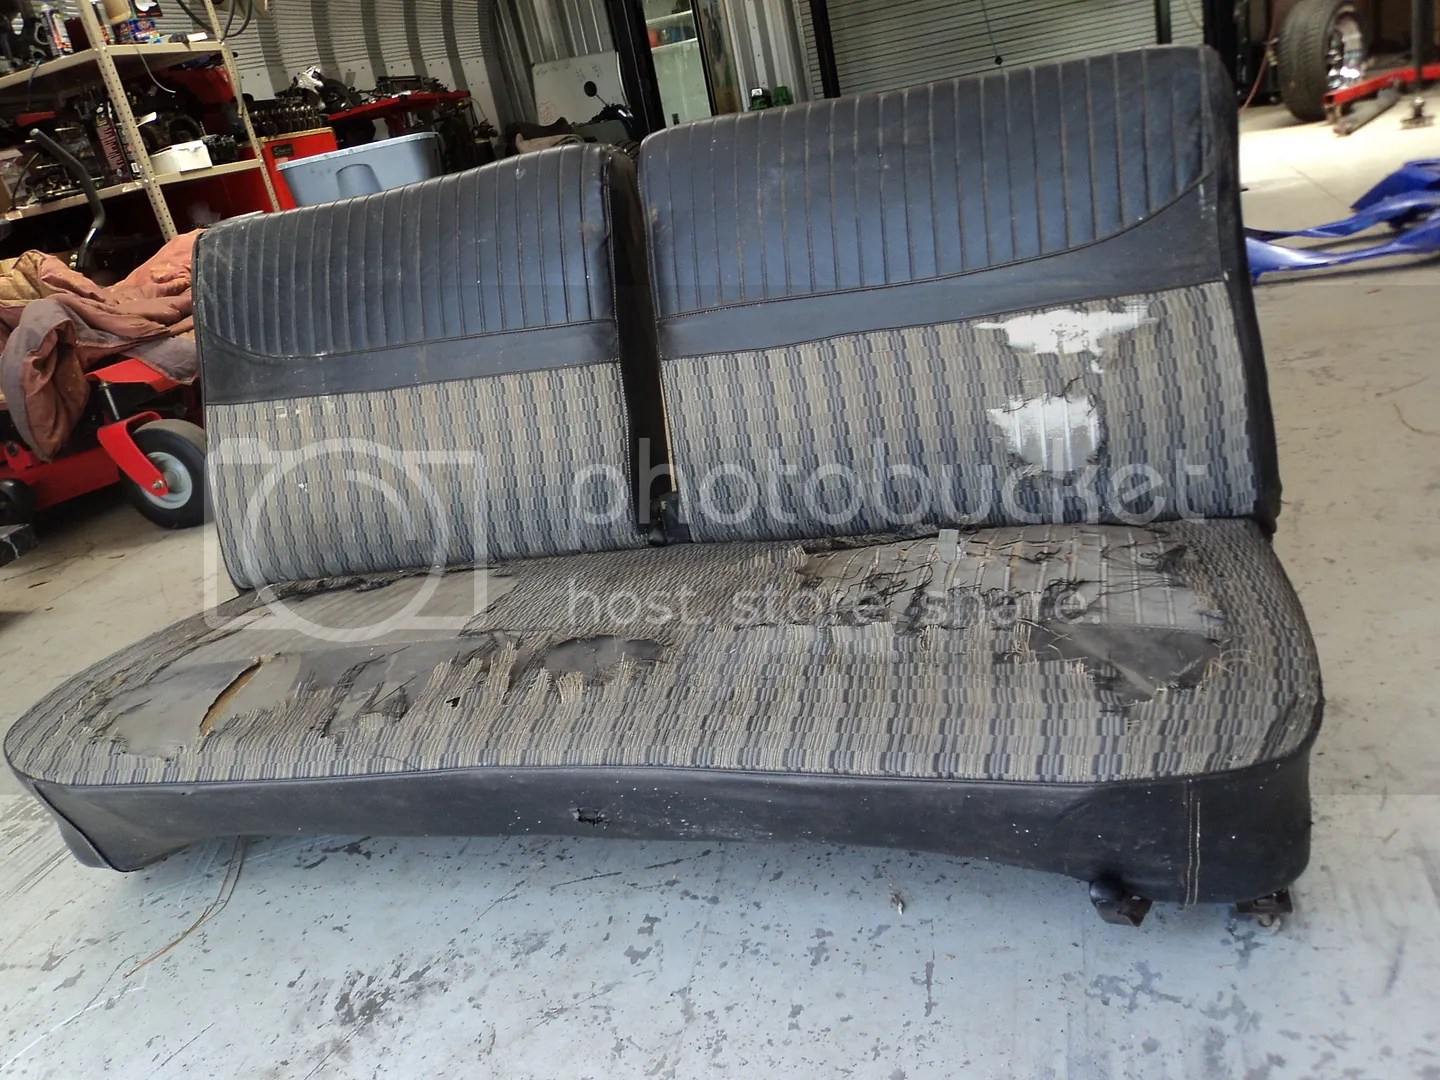 1961 Ford Falcon Seat Covers